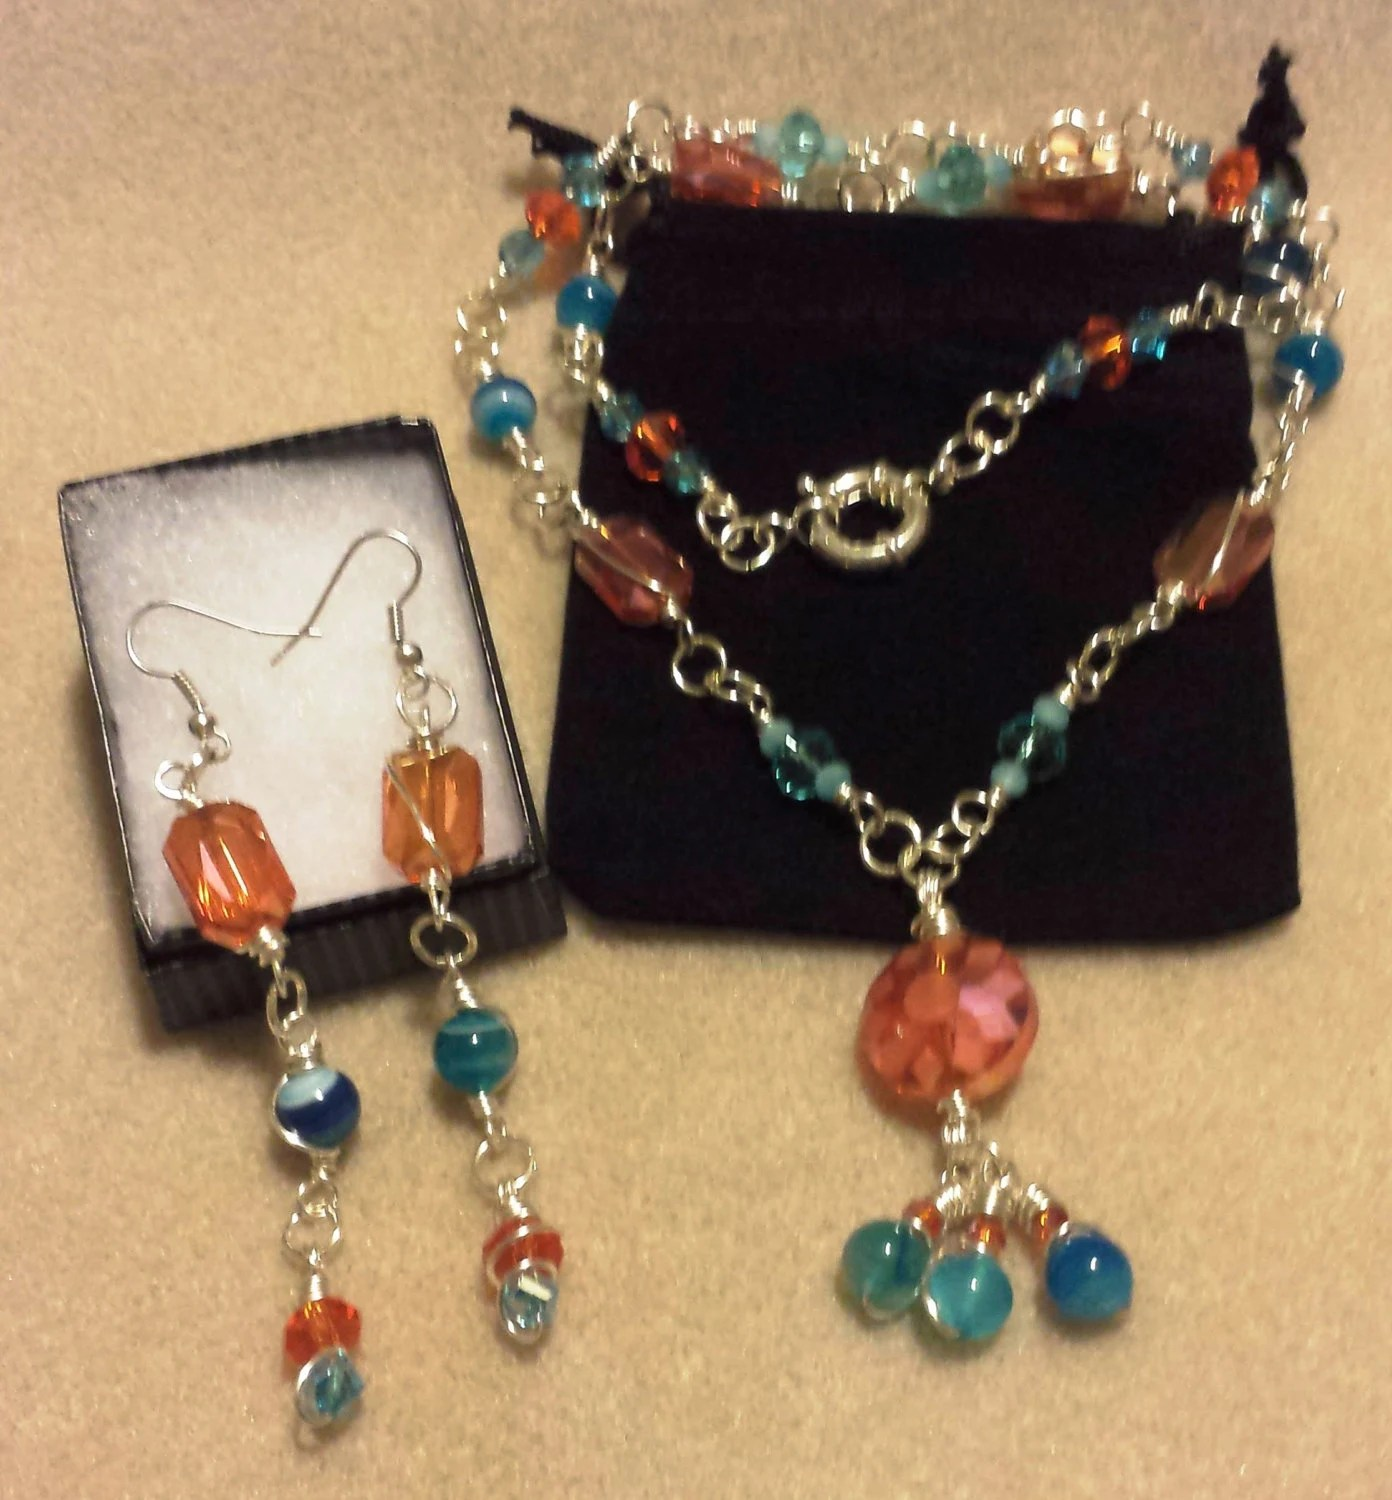 Unusual Handcrafted Jewelry Fun In The Sun Unique Handmade Jewelry Set By